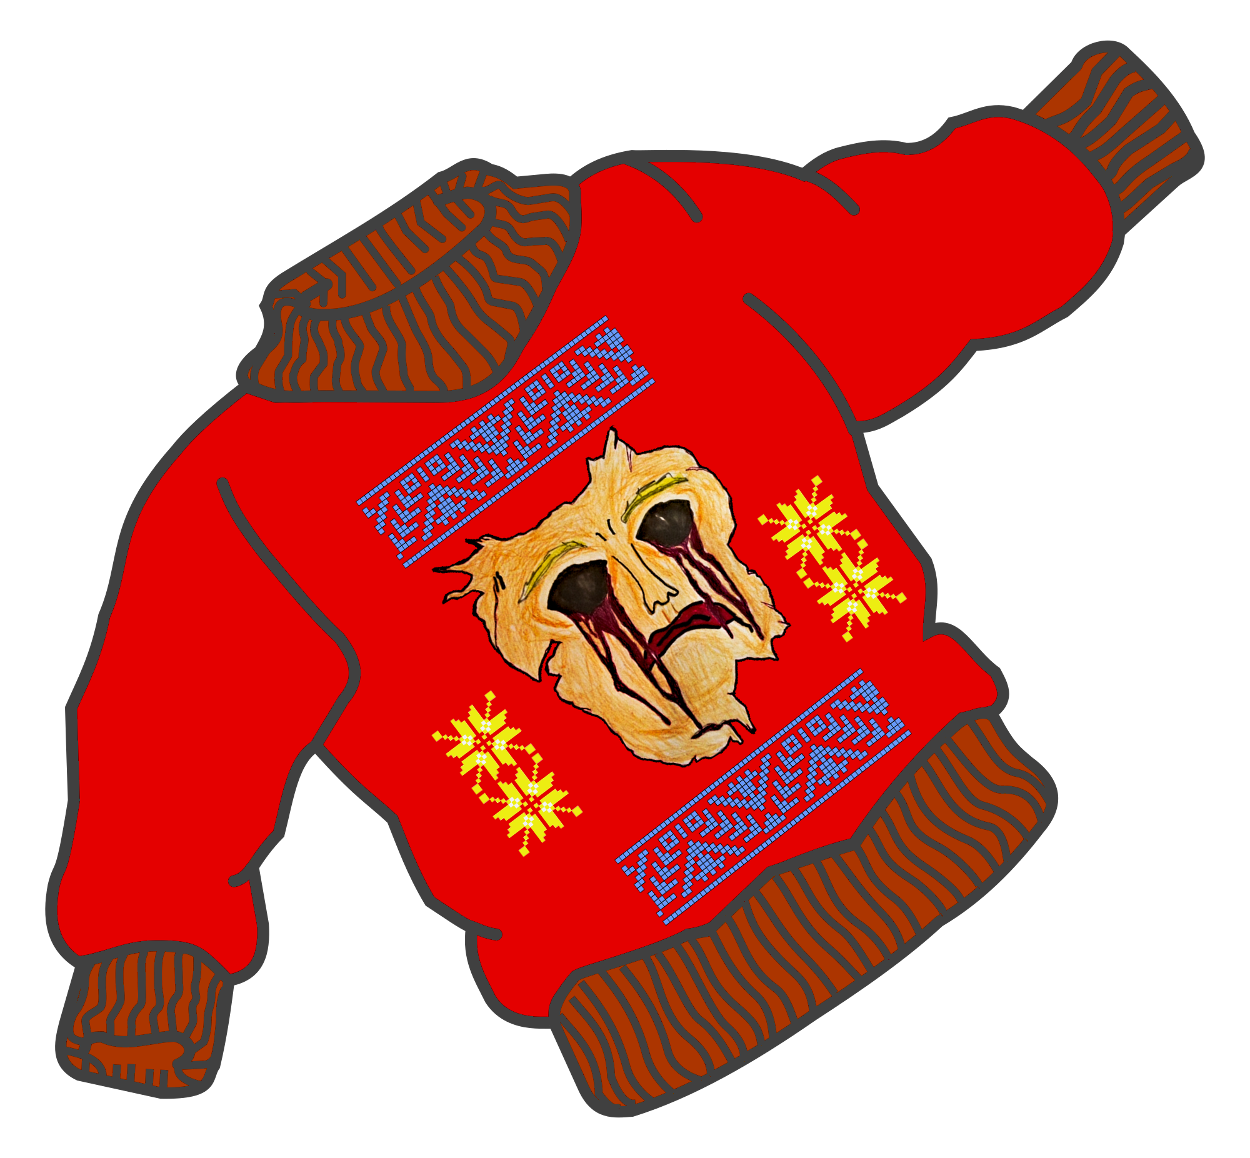 image freeuse library Ugly sweater clipart no background. At getdrawings com free.